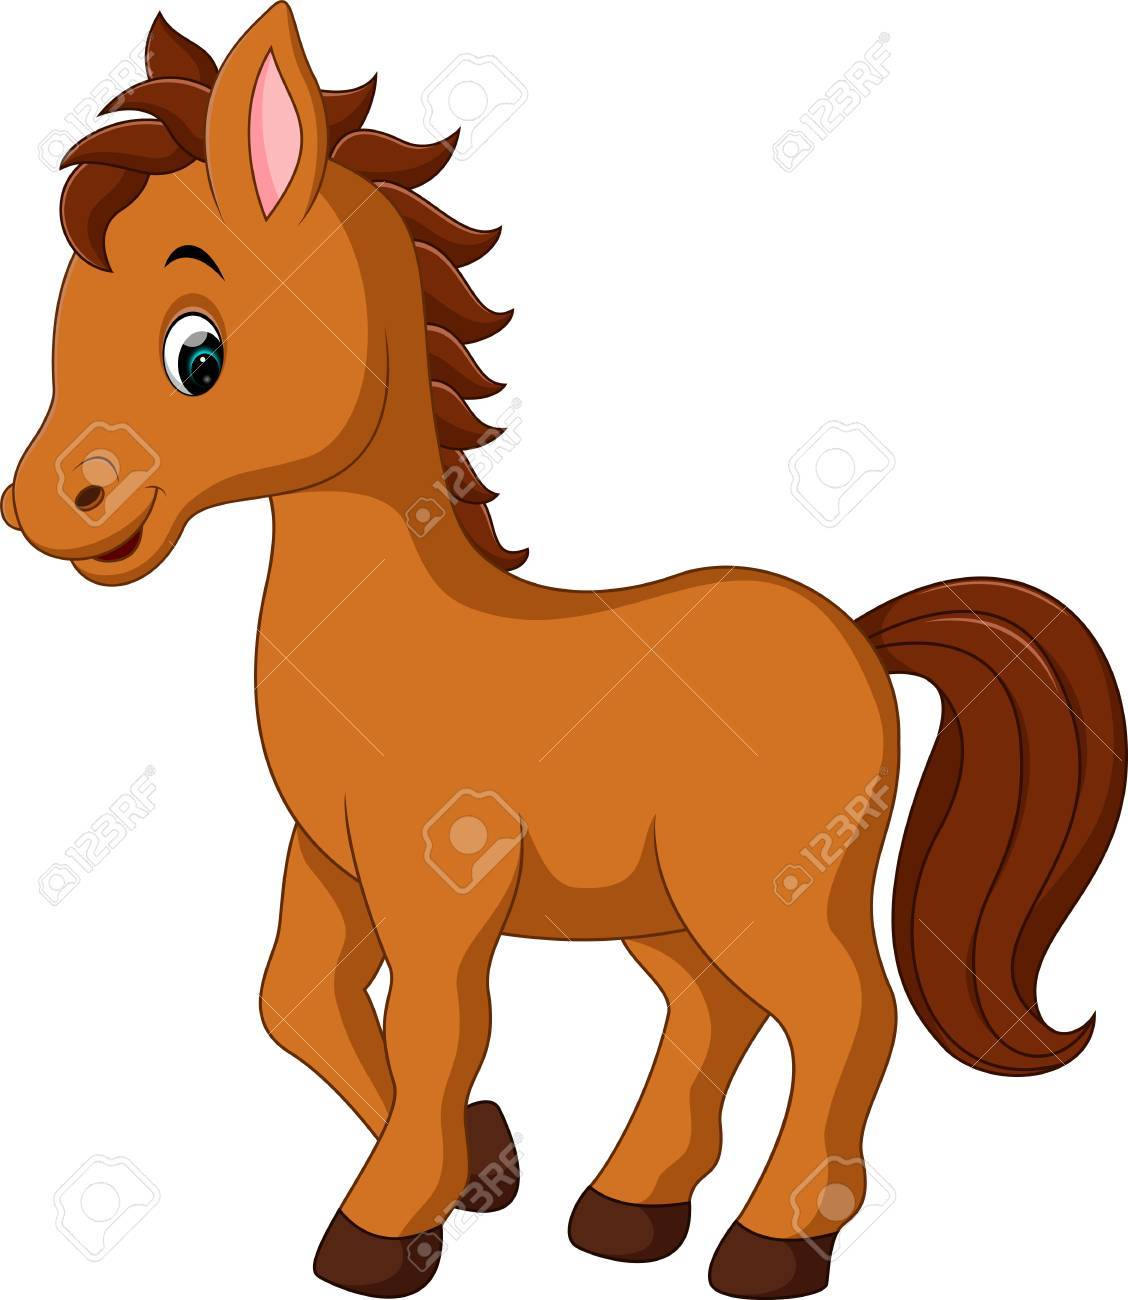 Cartoon horse clipart clip art royalty free Cartoon horse clipart 7 » Clipart Station clip art royalty free